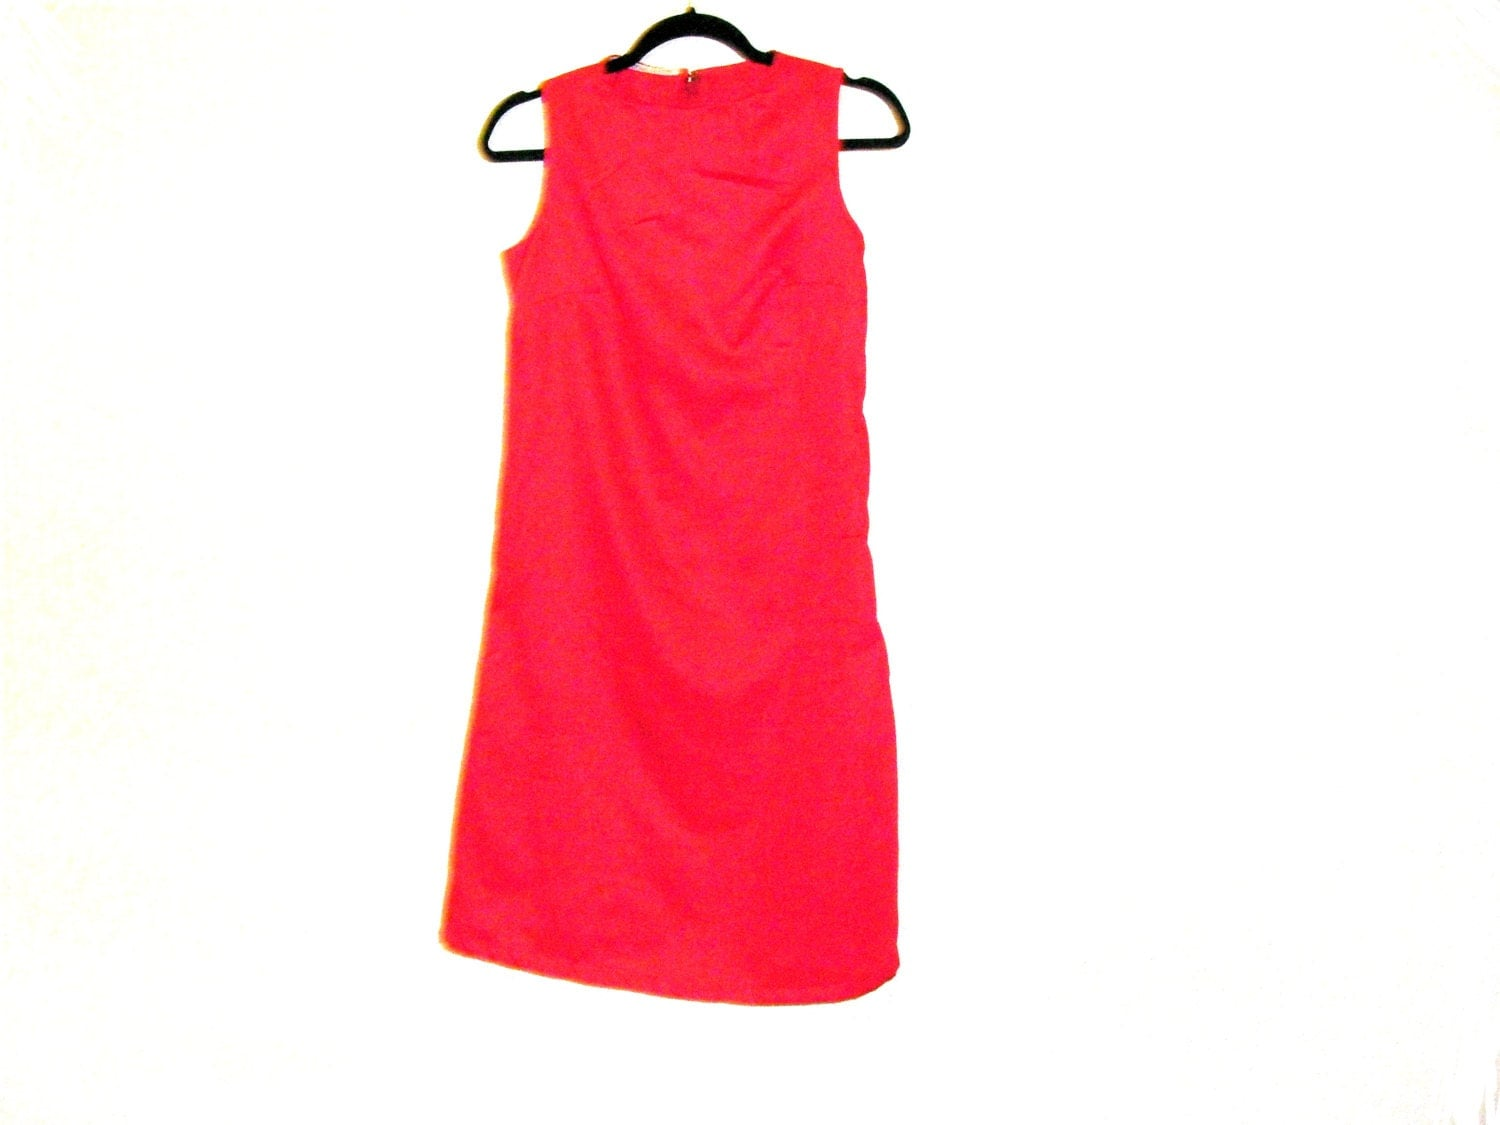 Red Dress Slip Dress Cotton Dress Womens Dress Size 8 Size 6 By Rebeccas Clothes